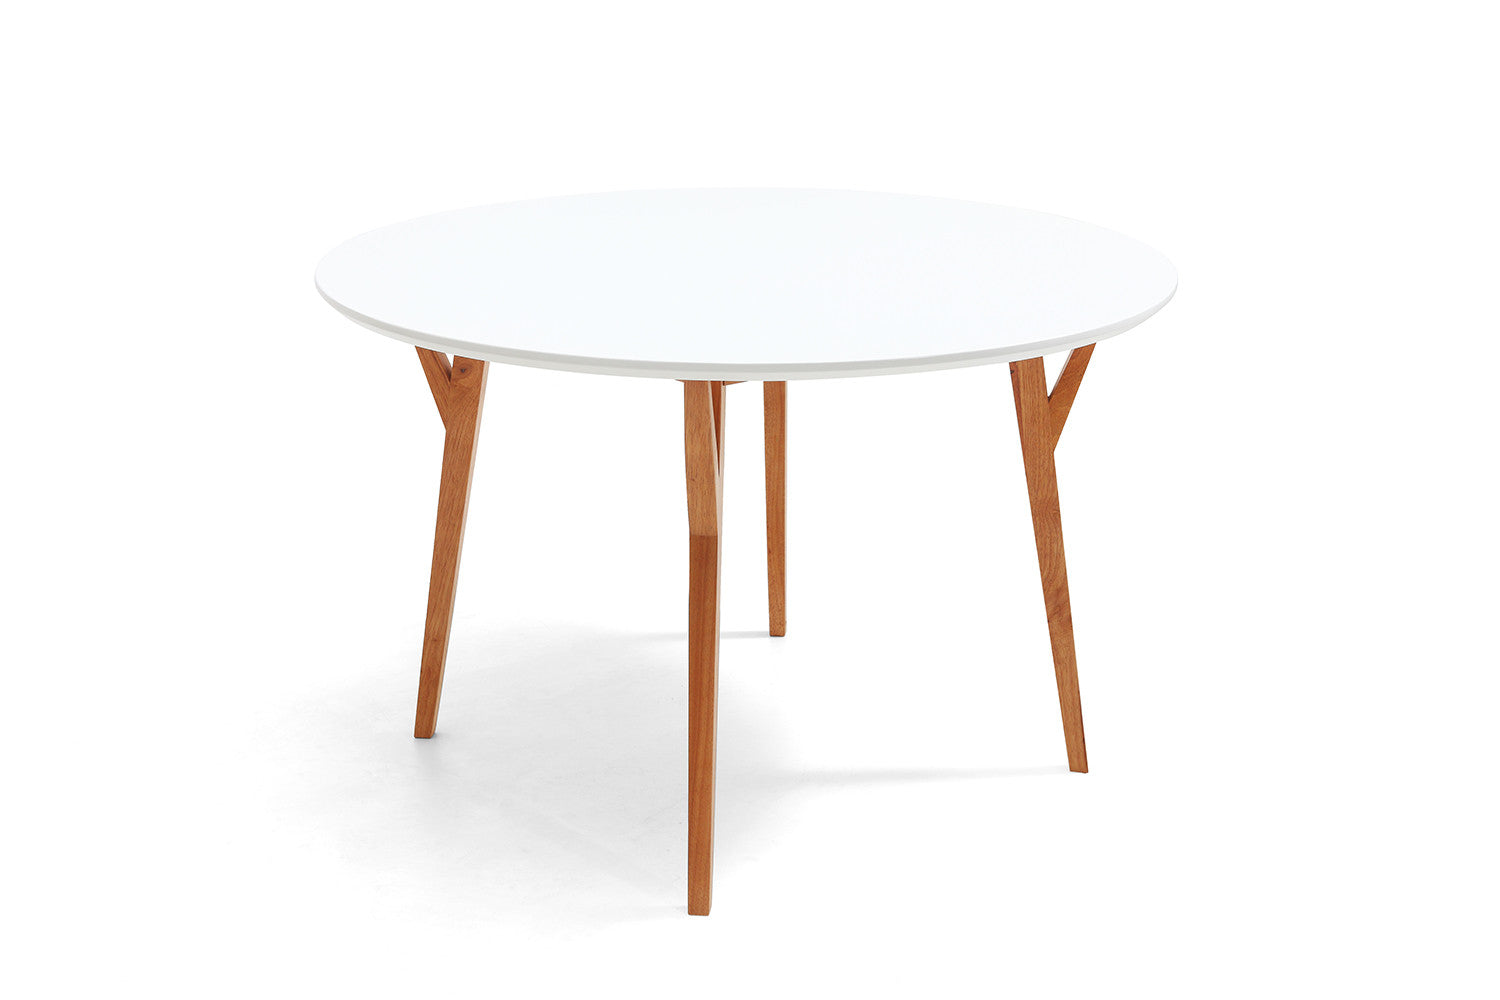 Table de salle manger ronde design scandinave moesa for Tables de salle a manger